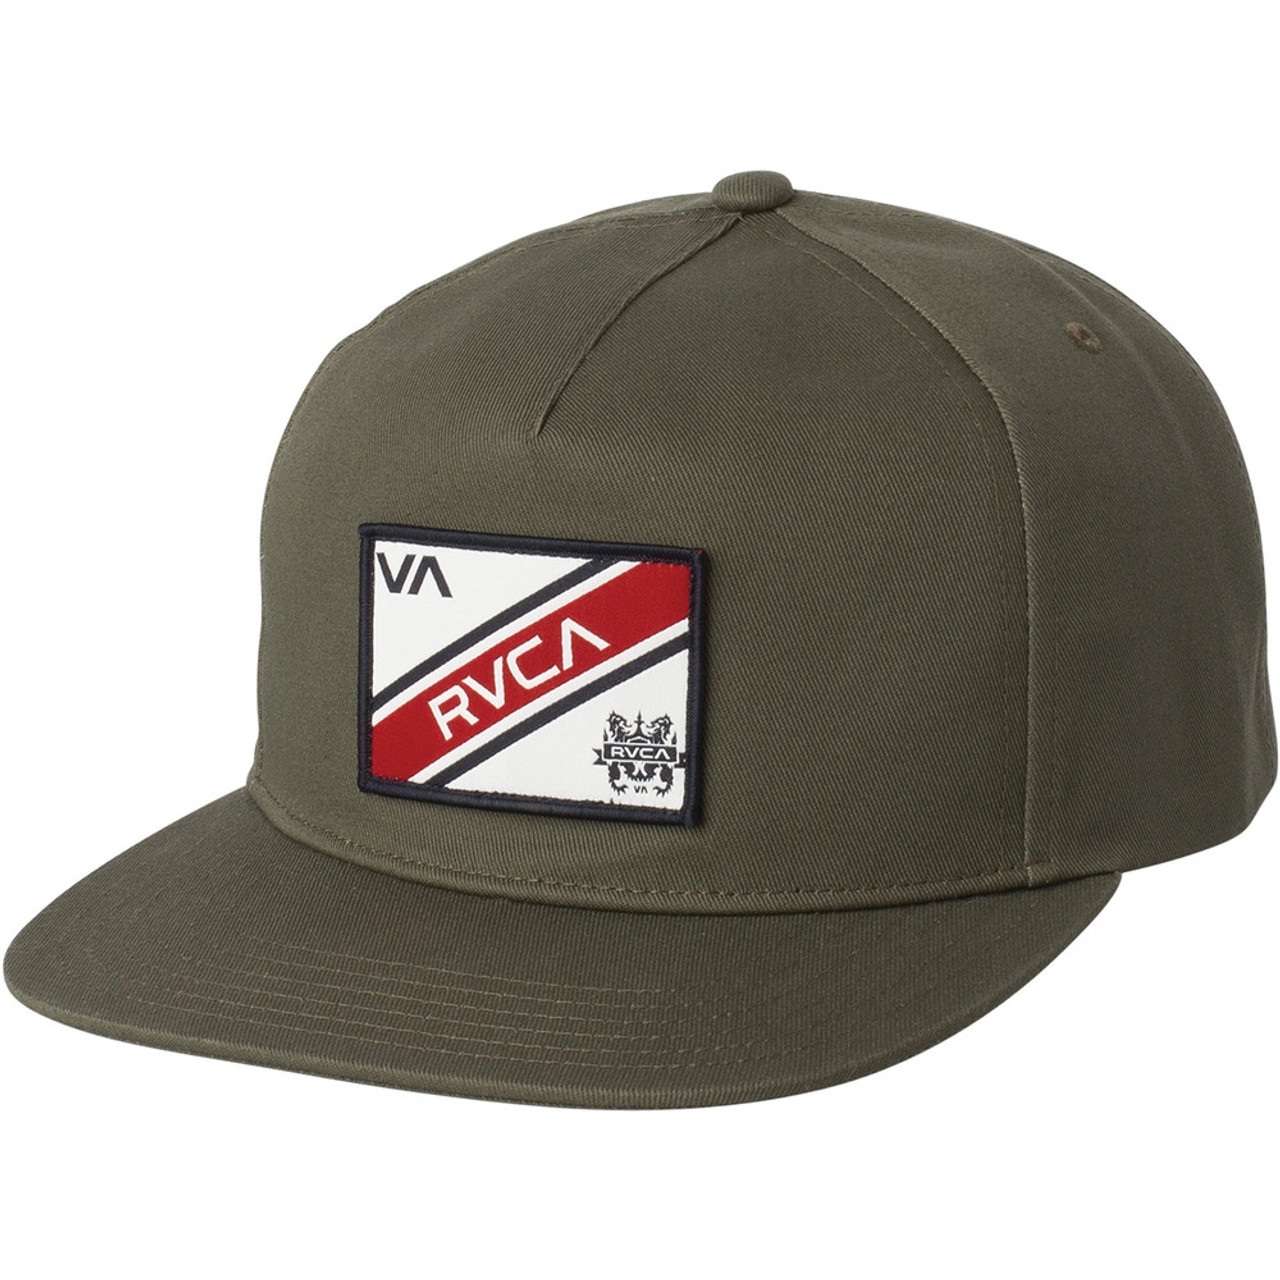 9b215dbb RVCA Hat - Places - Olive - Surf and Dirt